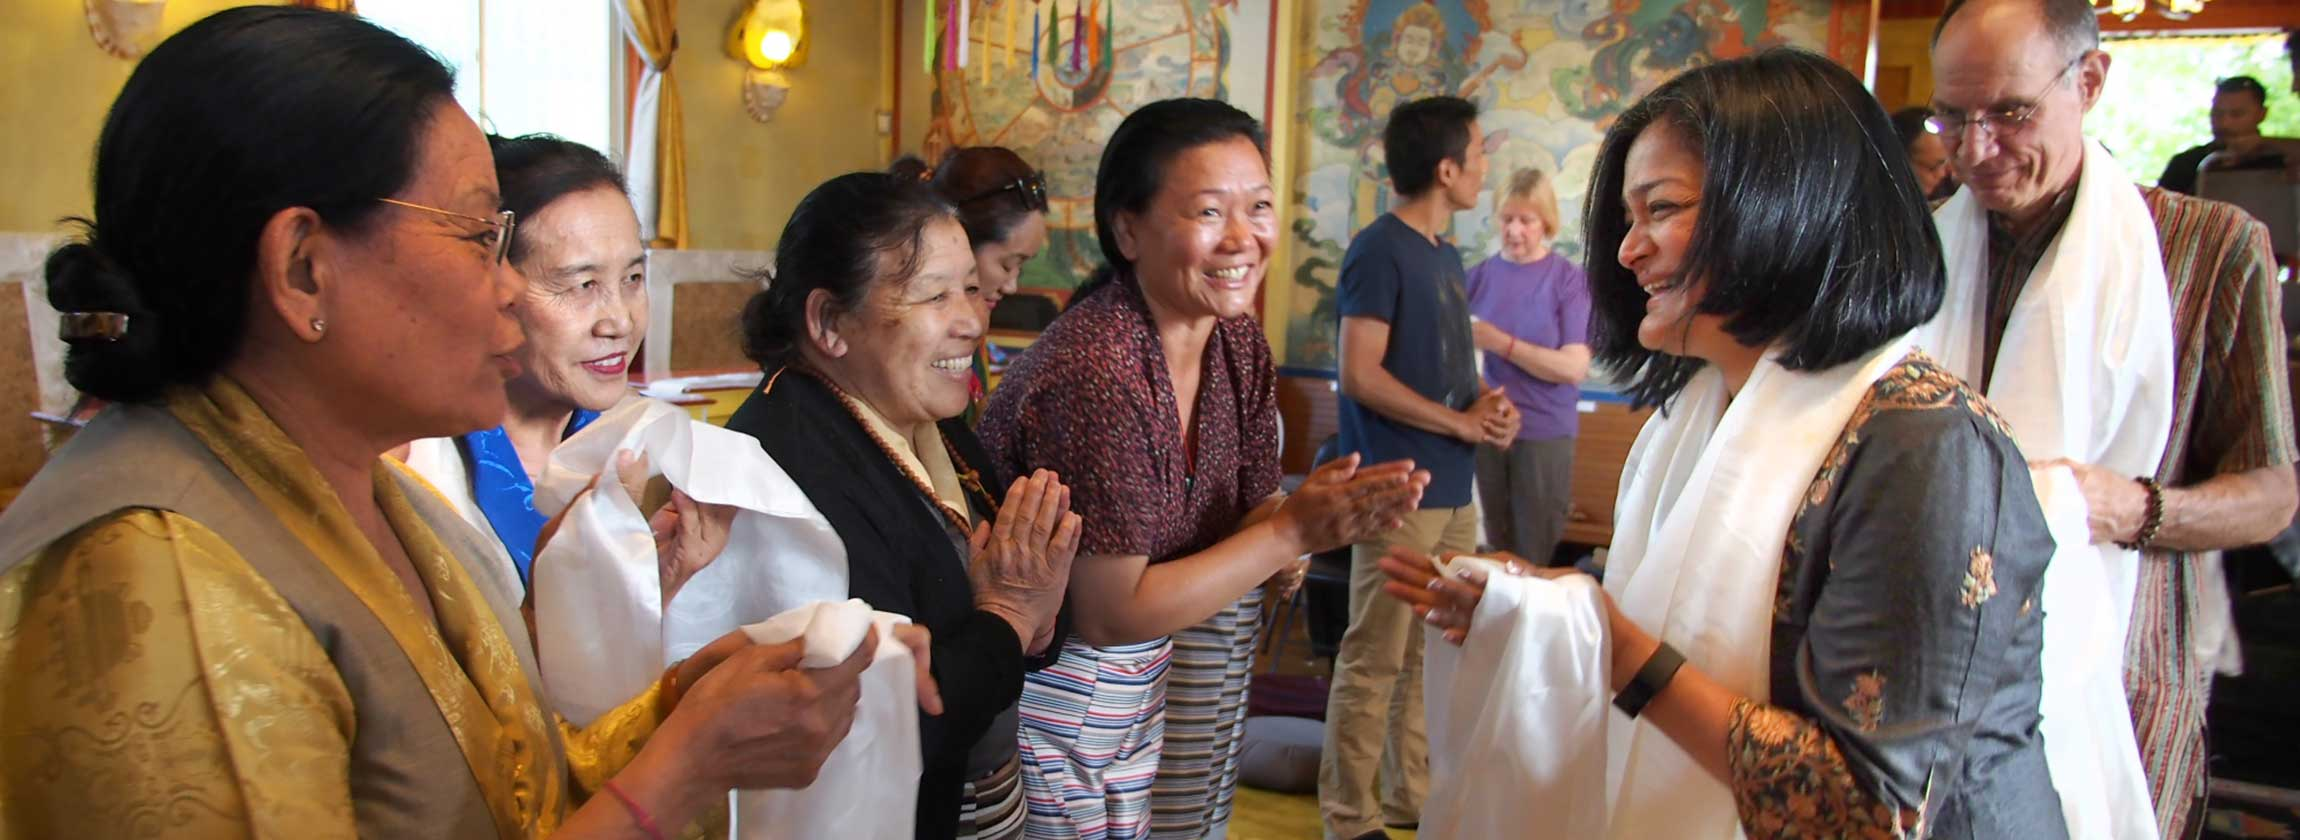 Washington state Congresswoman Pramila Jayapal met with members of the Tibetan community at Sakya Monastery in Seattle June 5, to hear about Tibetan issues and to share views about immigration. Click on photo to go to story >>